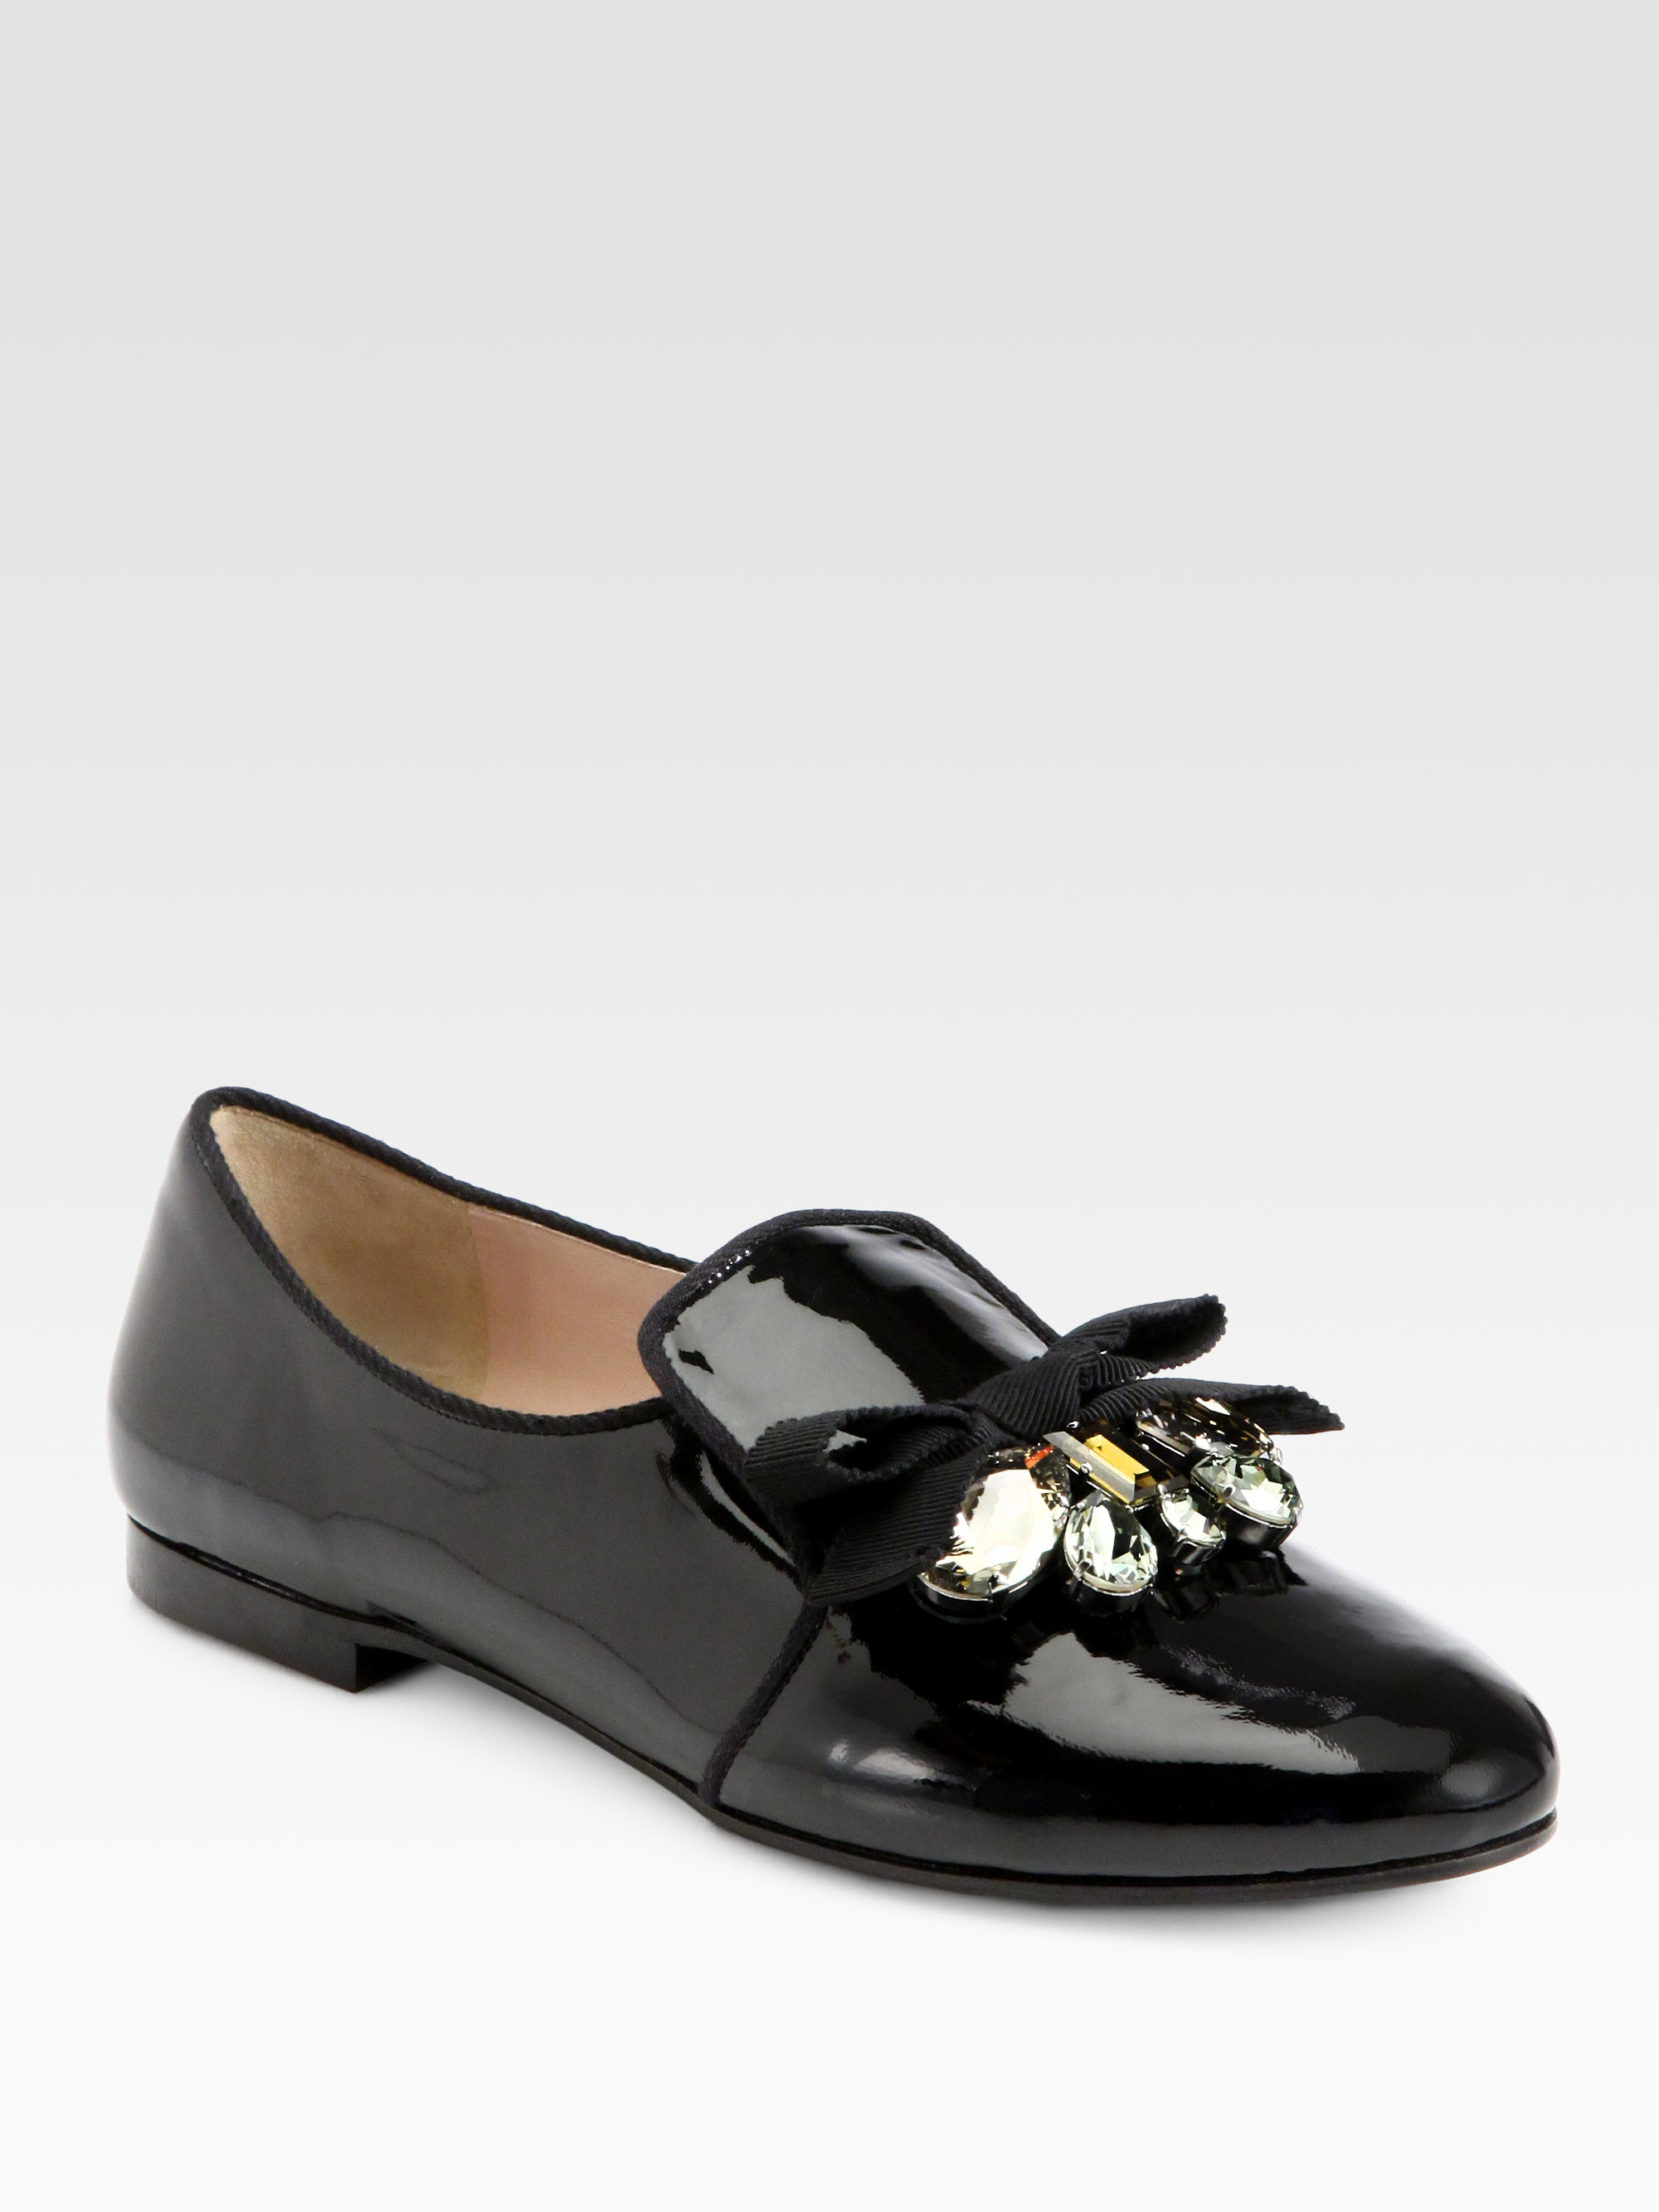 5d8ad8a25e80 Miu Miu Embellished Patent Leather Bow Loafers in Black - Lyst